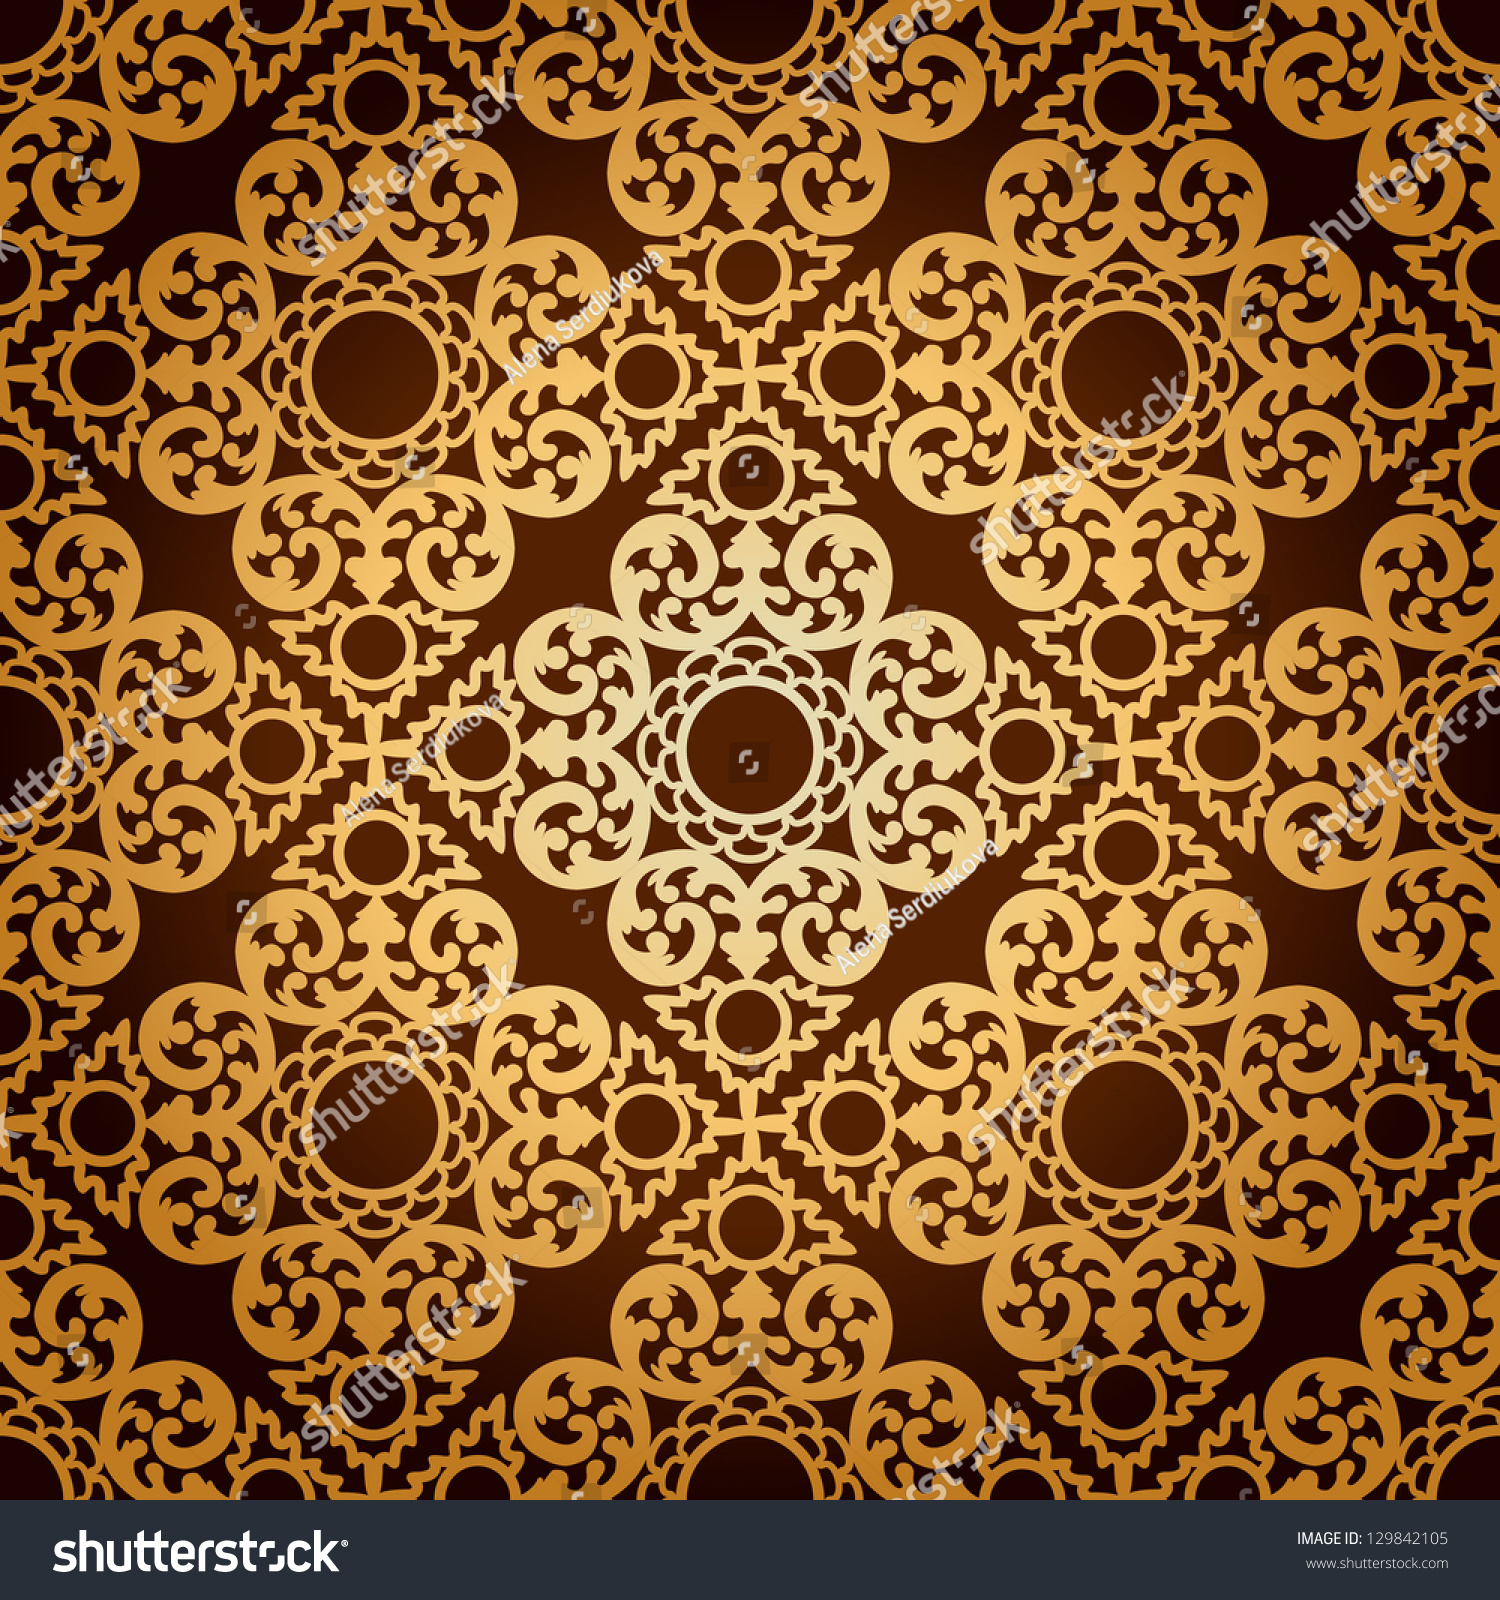 Gothic Pattern Wallpaper seamless pattern backgroundclassic gothic floral wallpaper stock